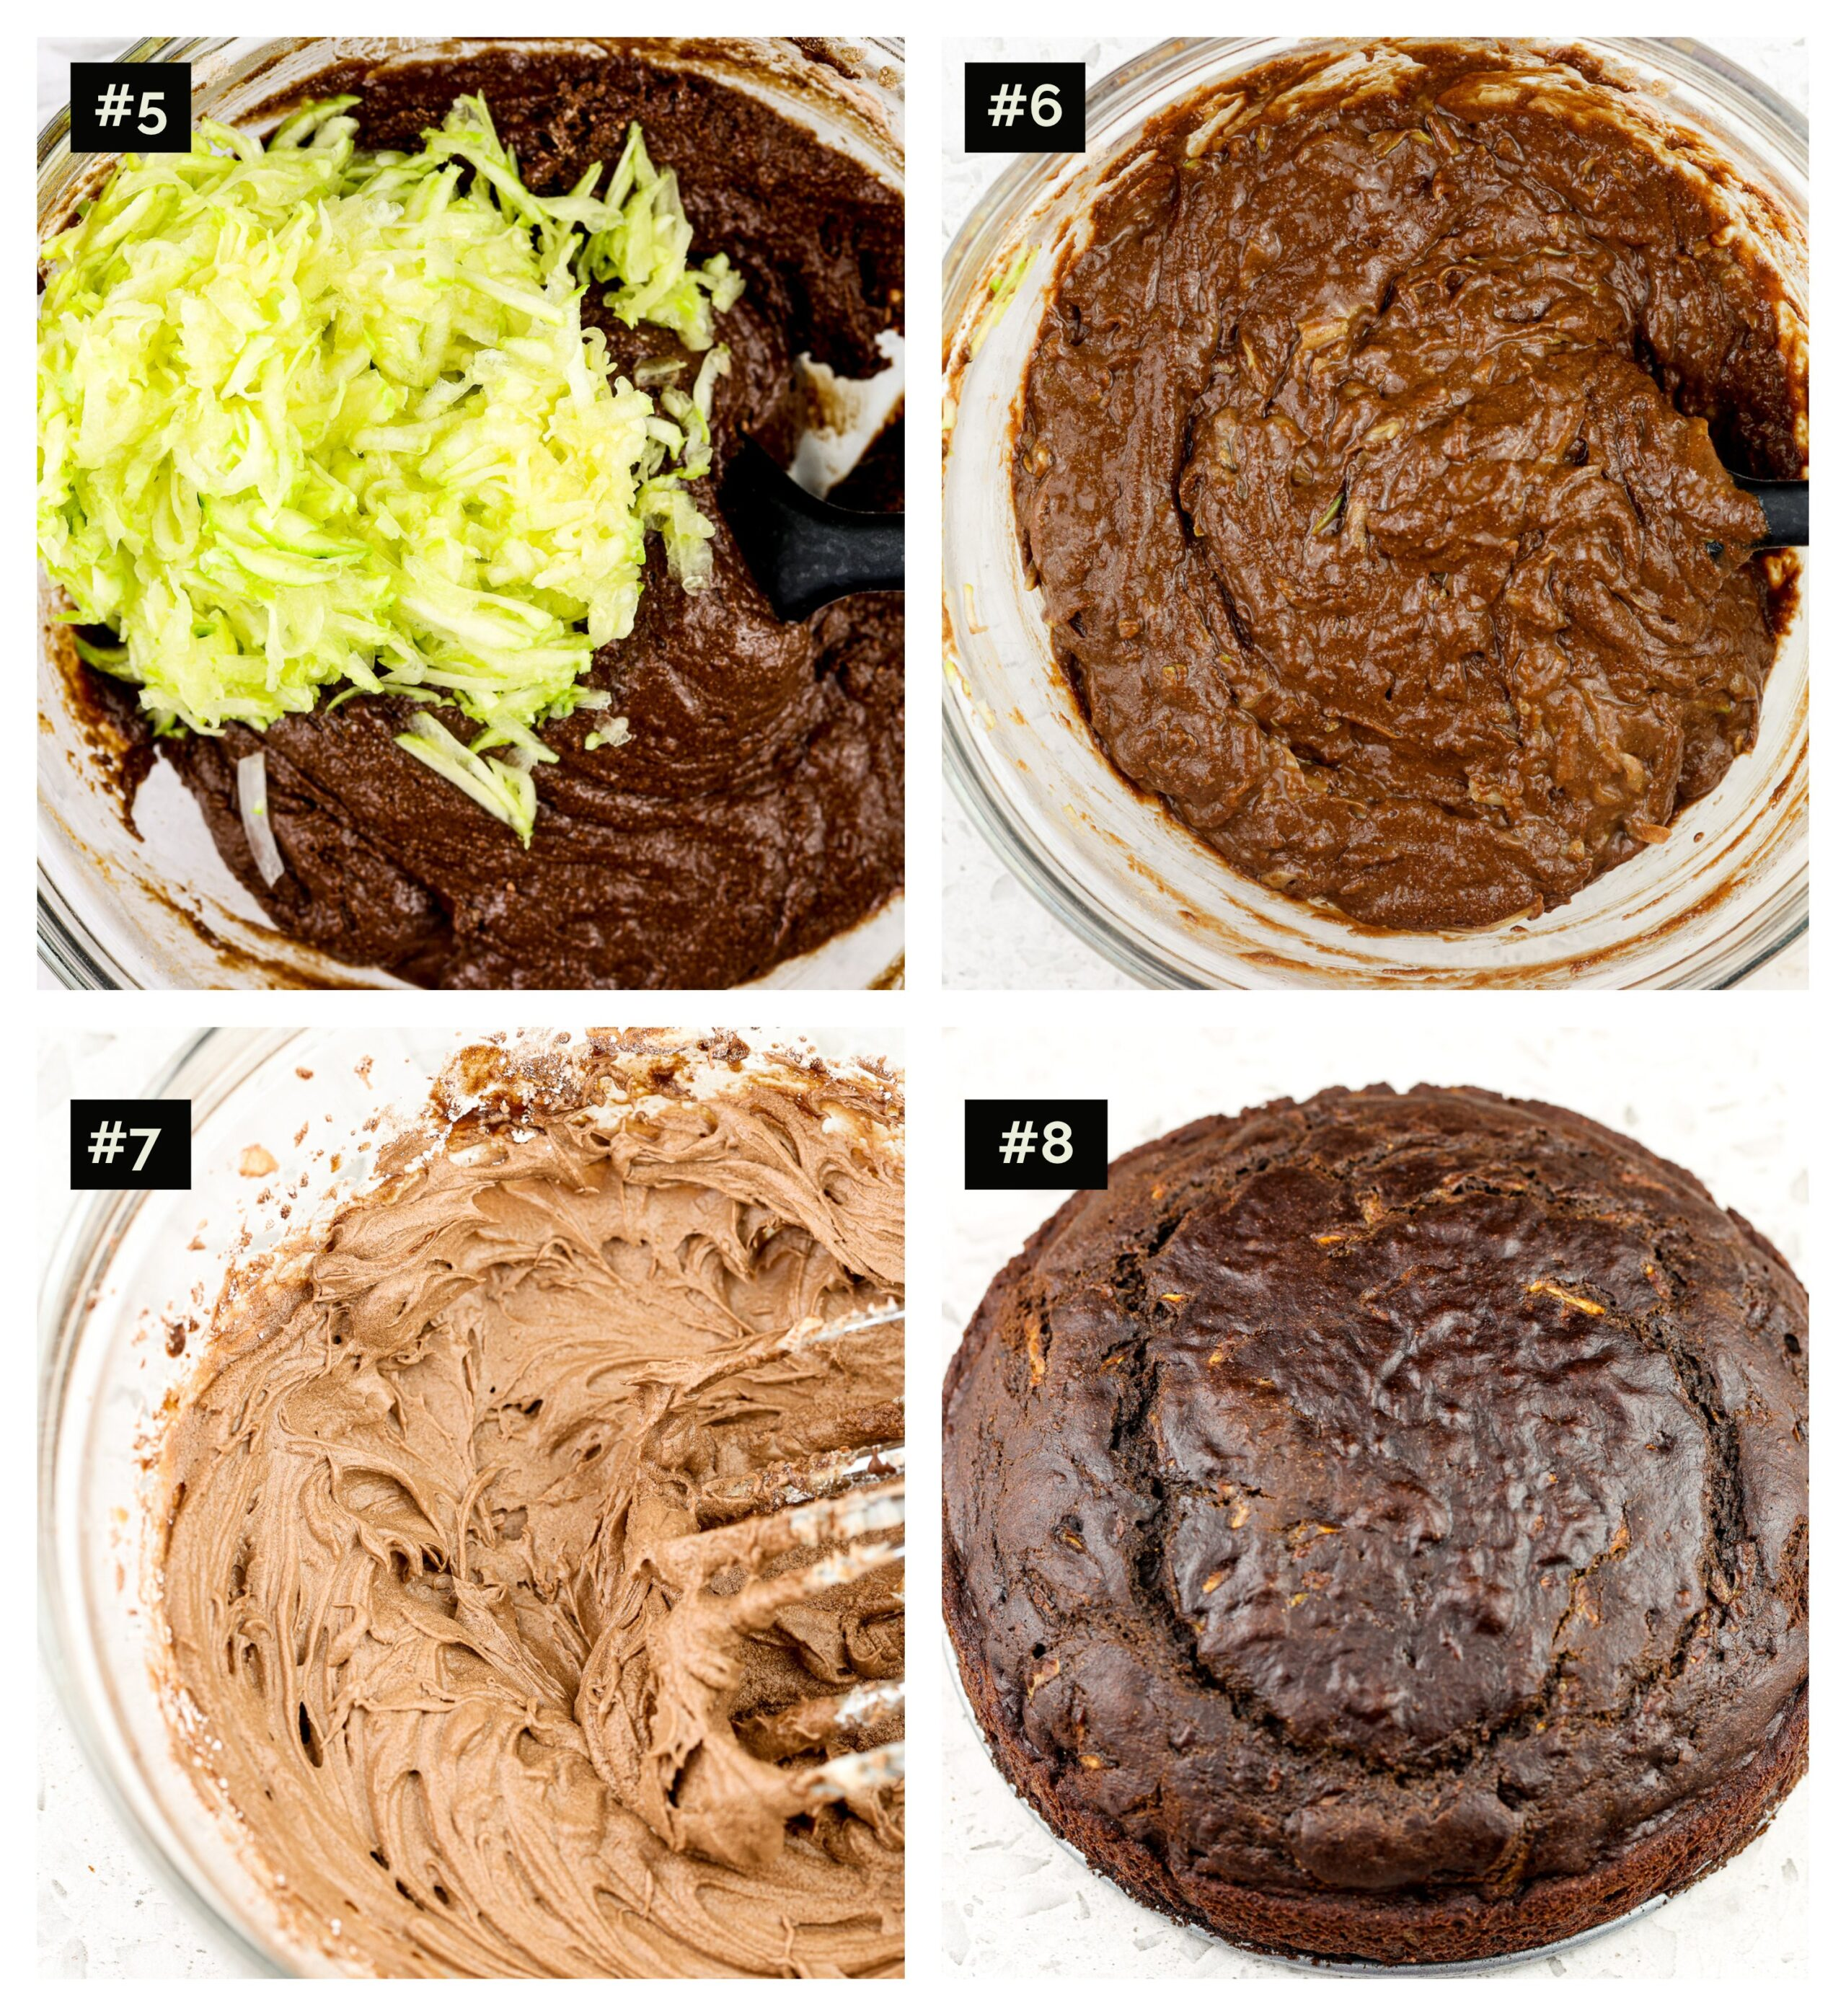 Four picture collage of making cake, with zucchini being stirred into chocolate cake batter, then glass bowl with two beaters with whipped chocolate topping, then final baked cake.